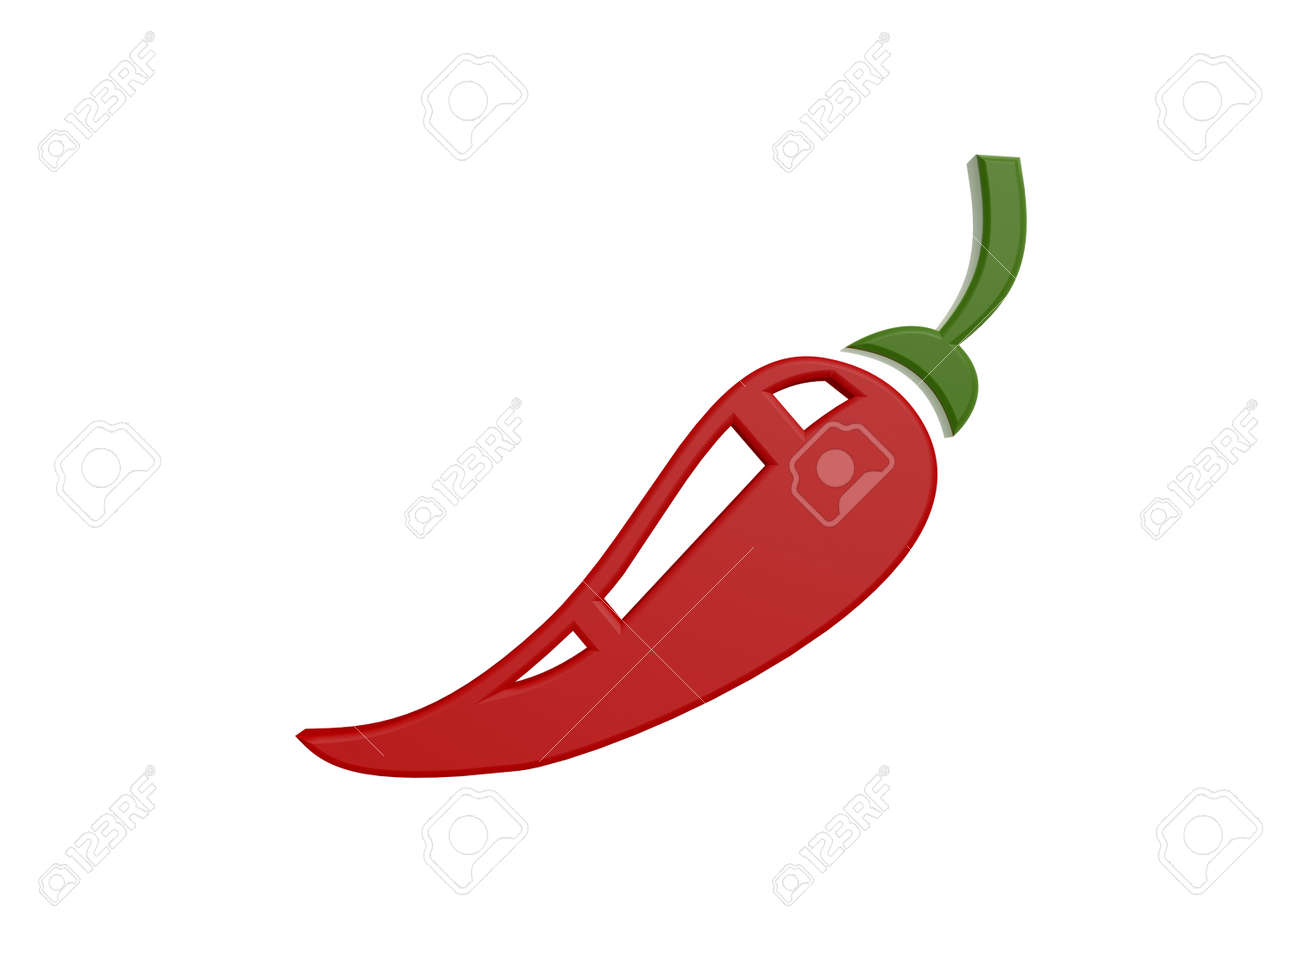 Red hot pepper symbol isolated on white background stock photo red hot pepper symbol isolated on white background stock photo 22502795 biocorpaavc